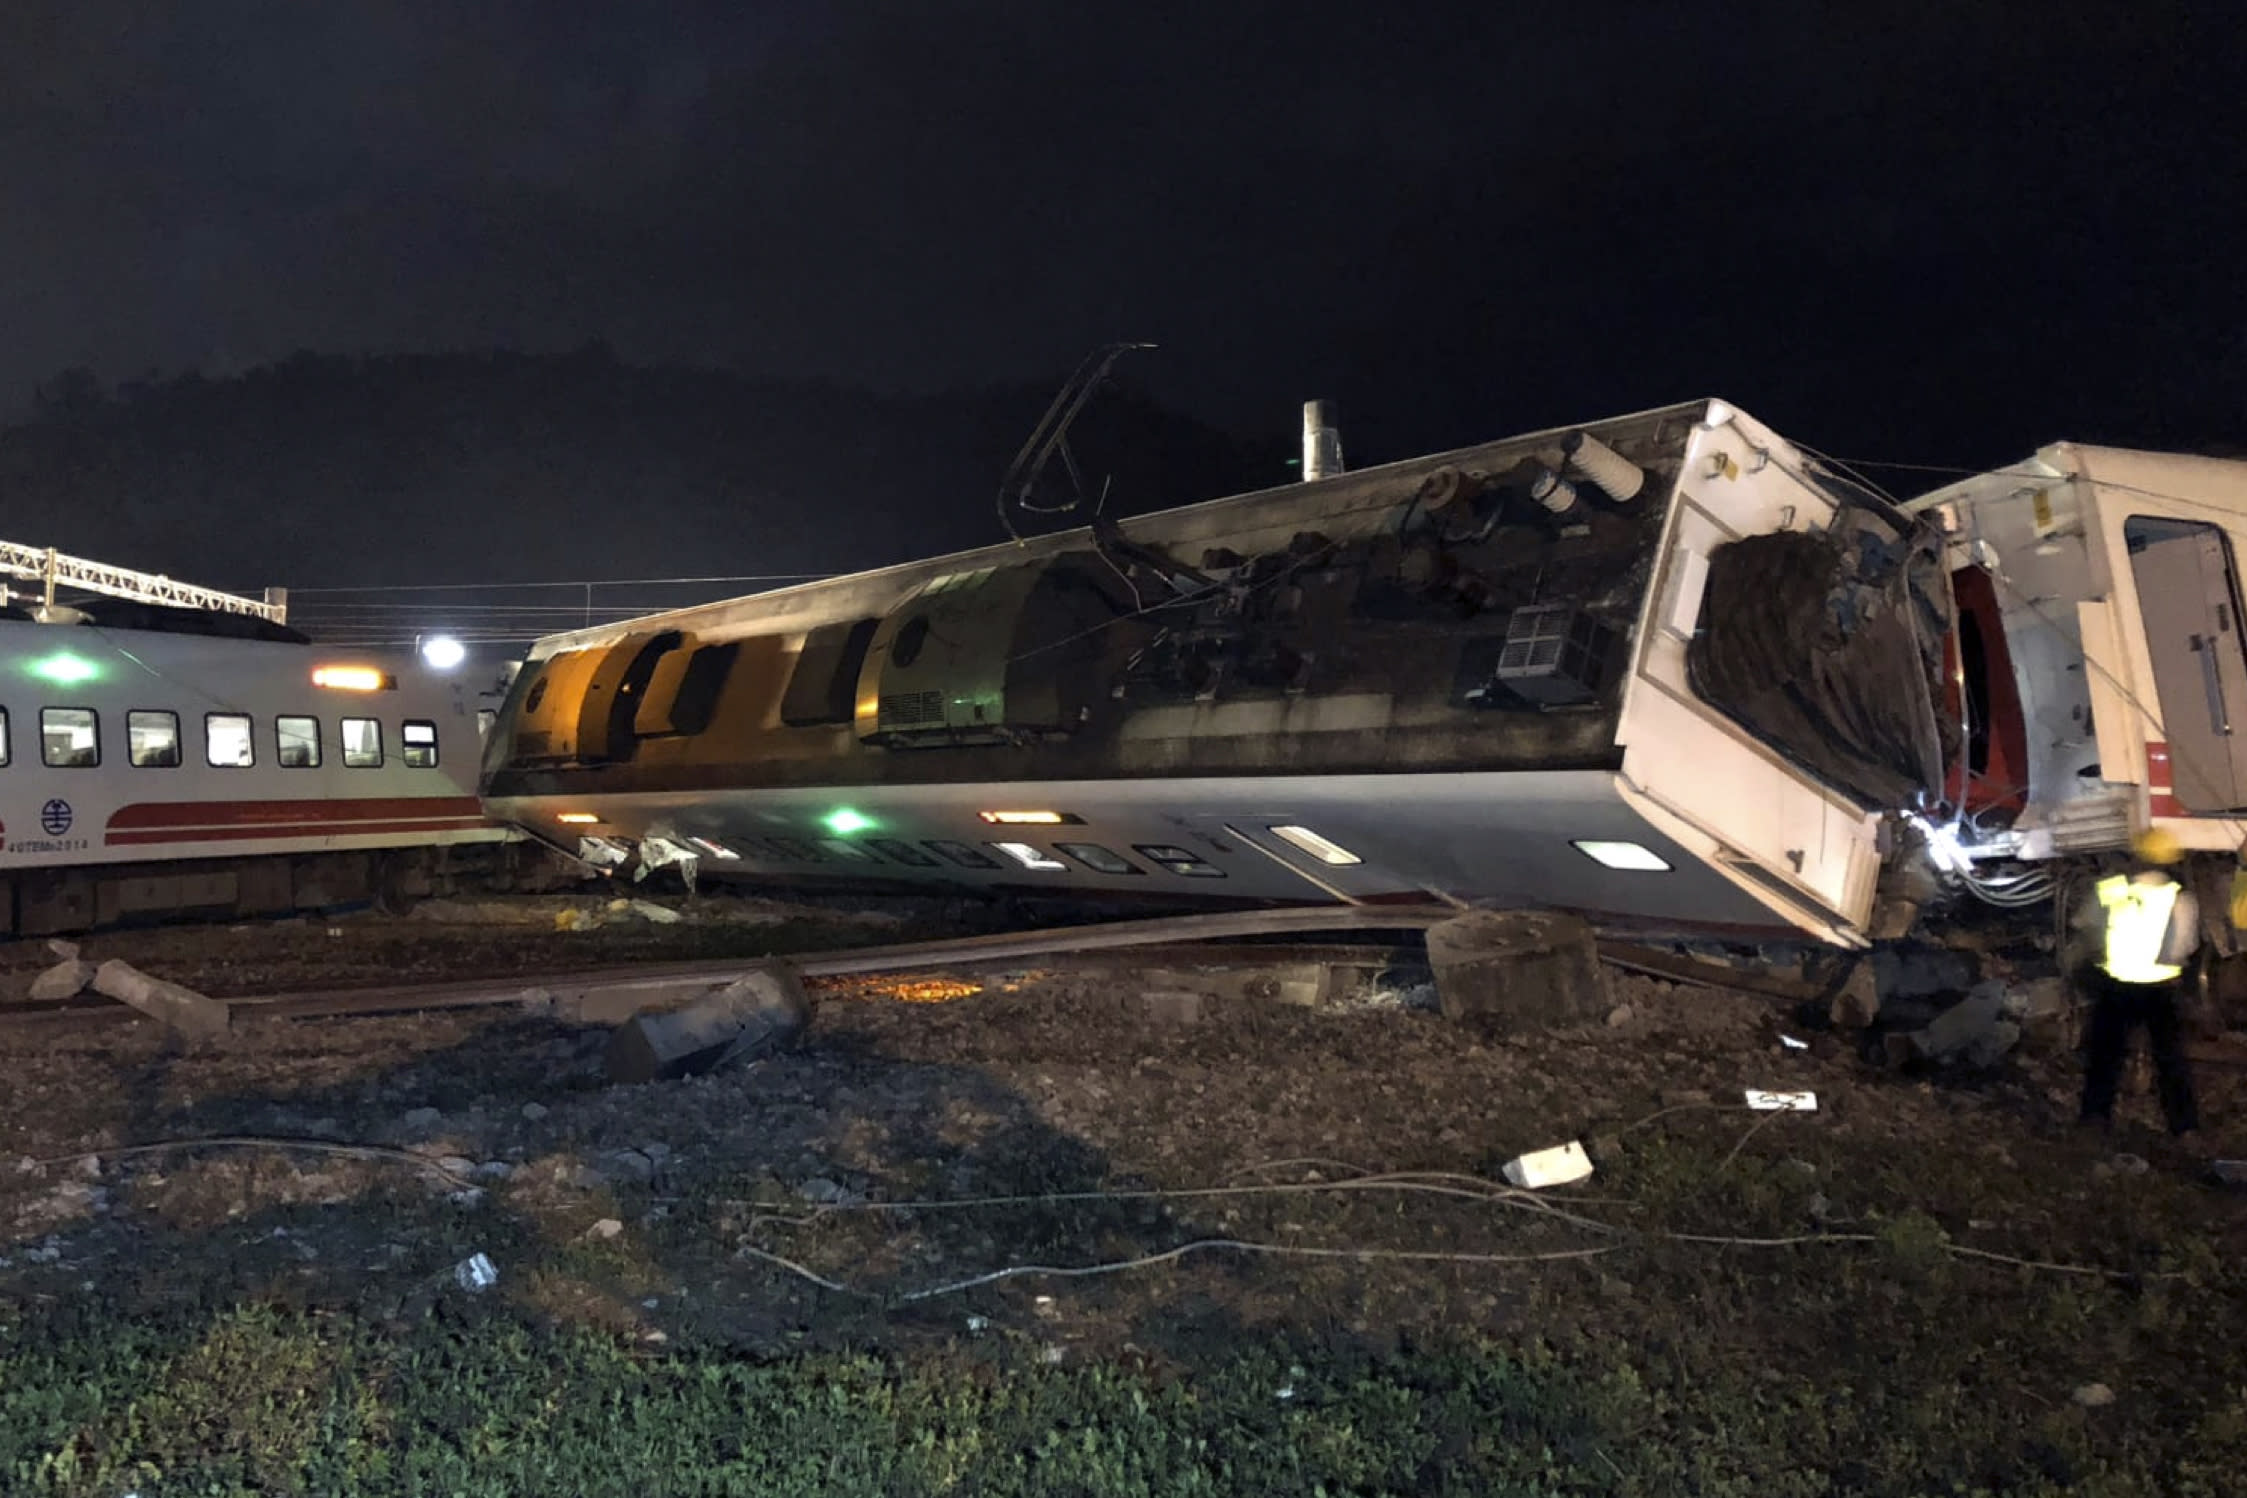 One of Taiwan's fastest trains derails, killing at least 18